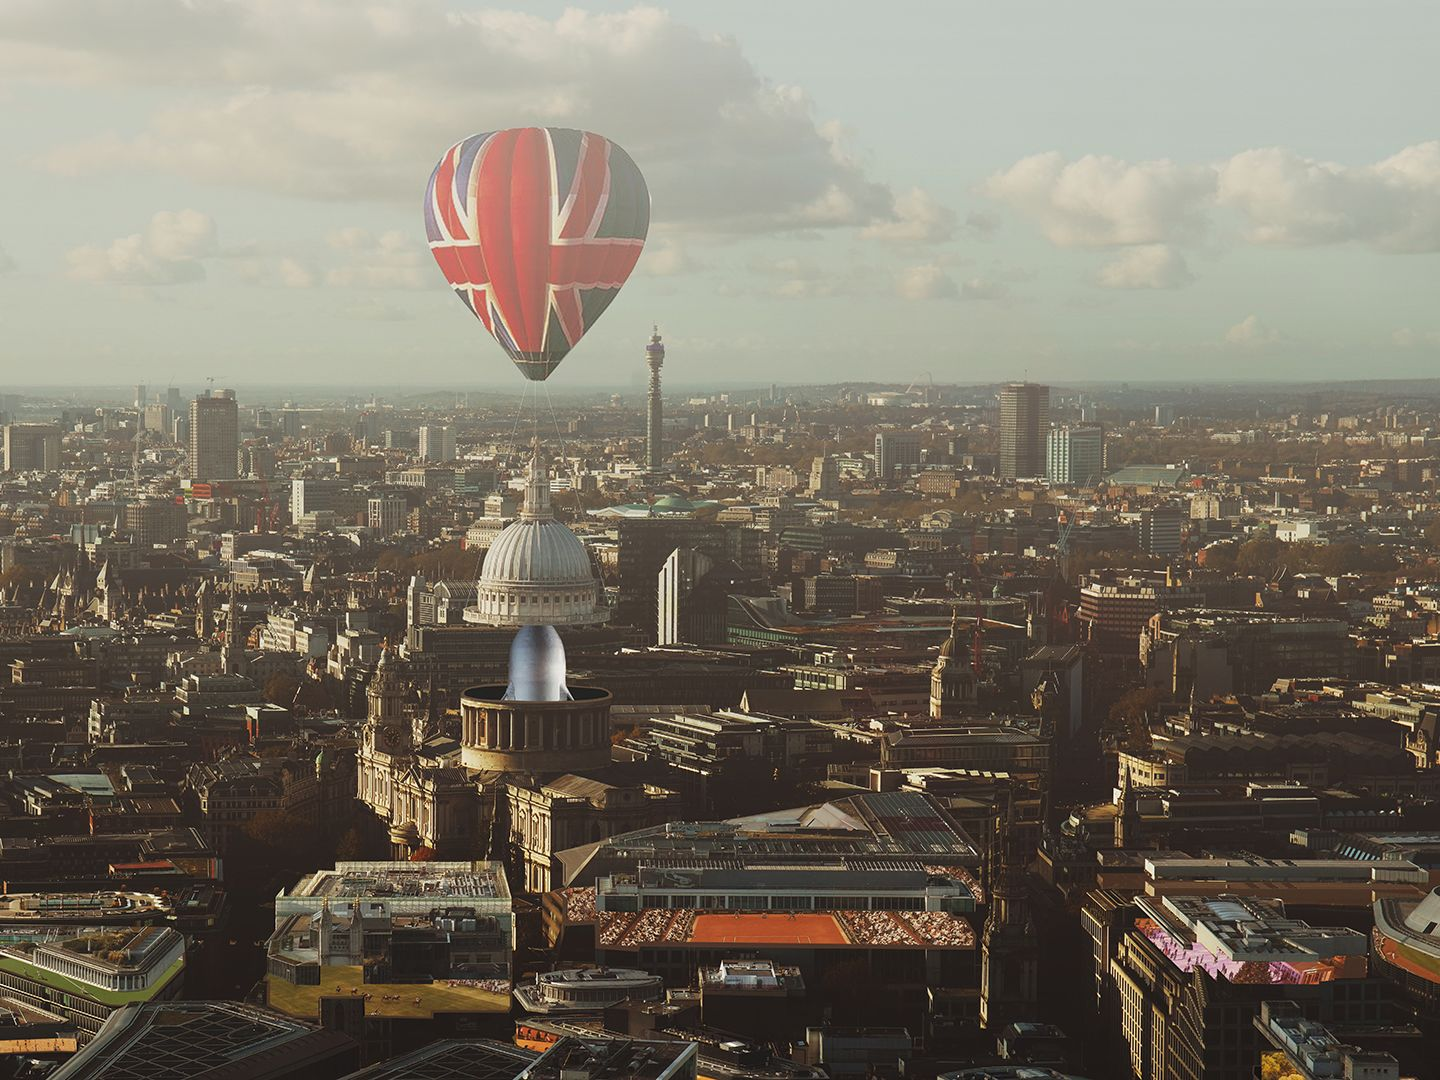 Landscape photography of London by Maggie Viegener